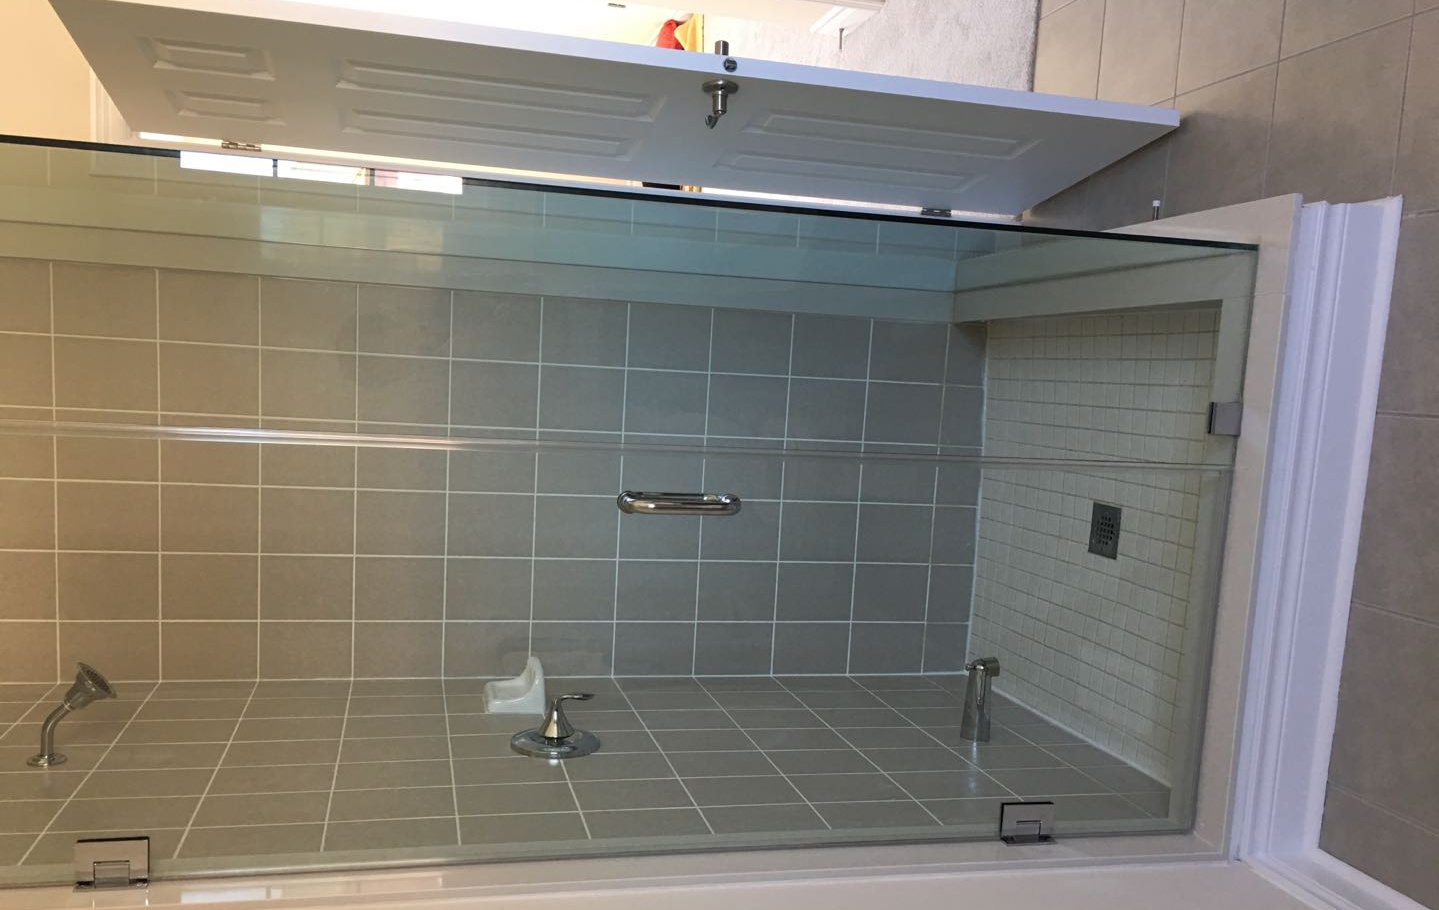 House for rent at 92 Morningside Dr, Halton Hills, ON. This is the bathroom.